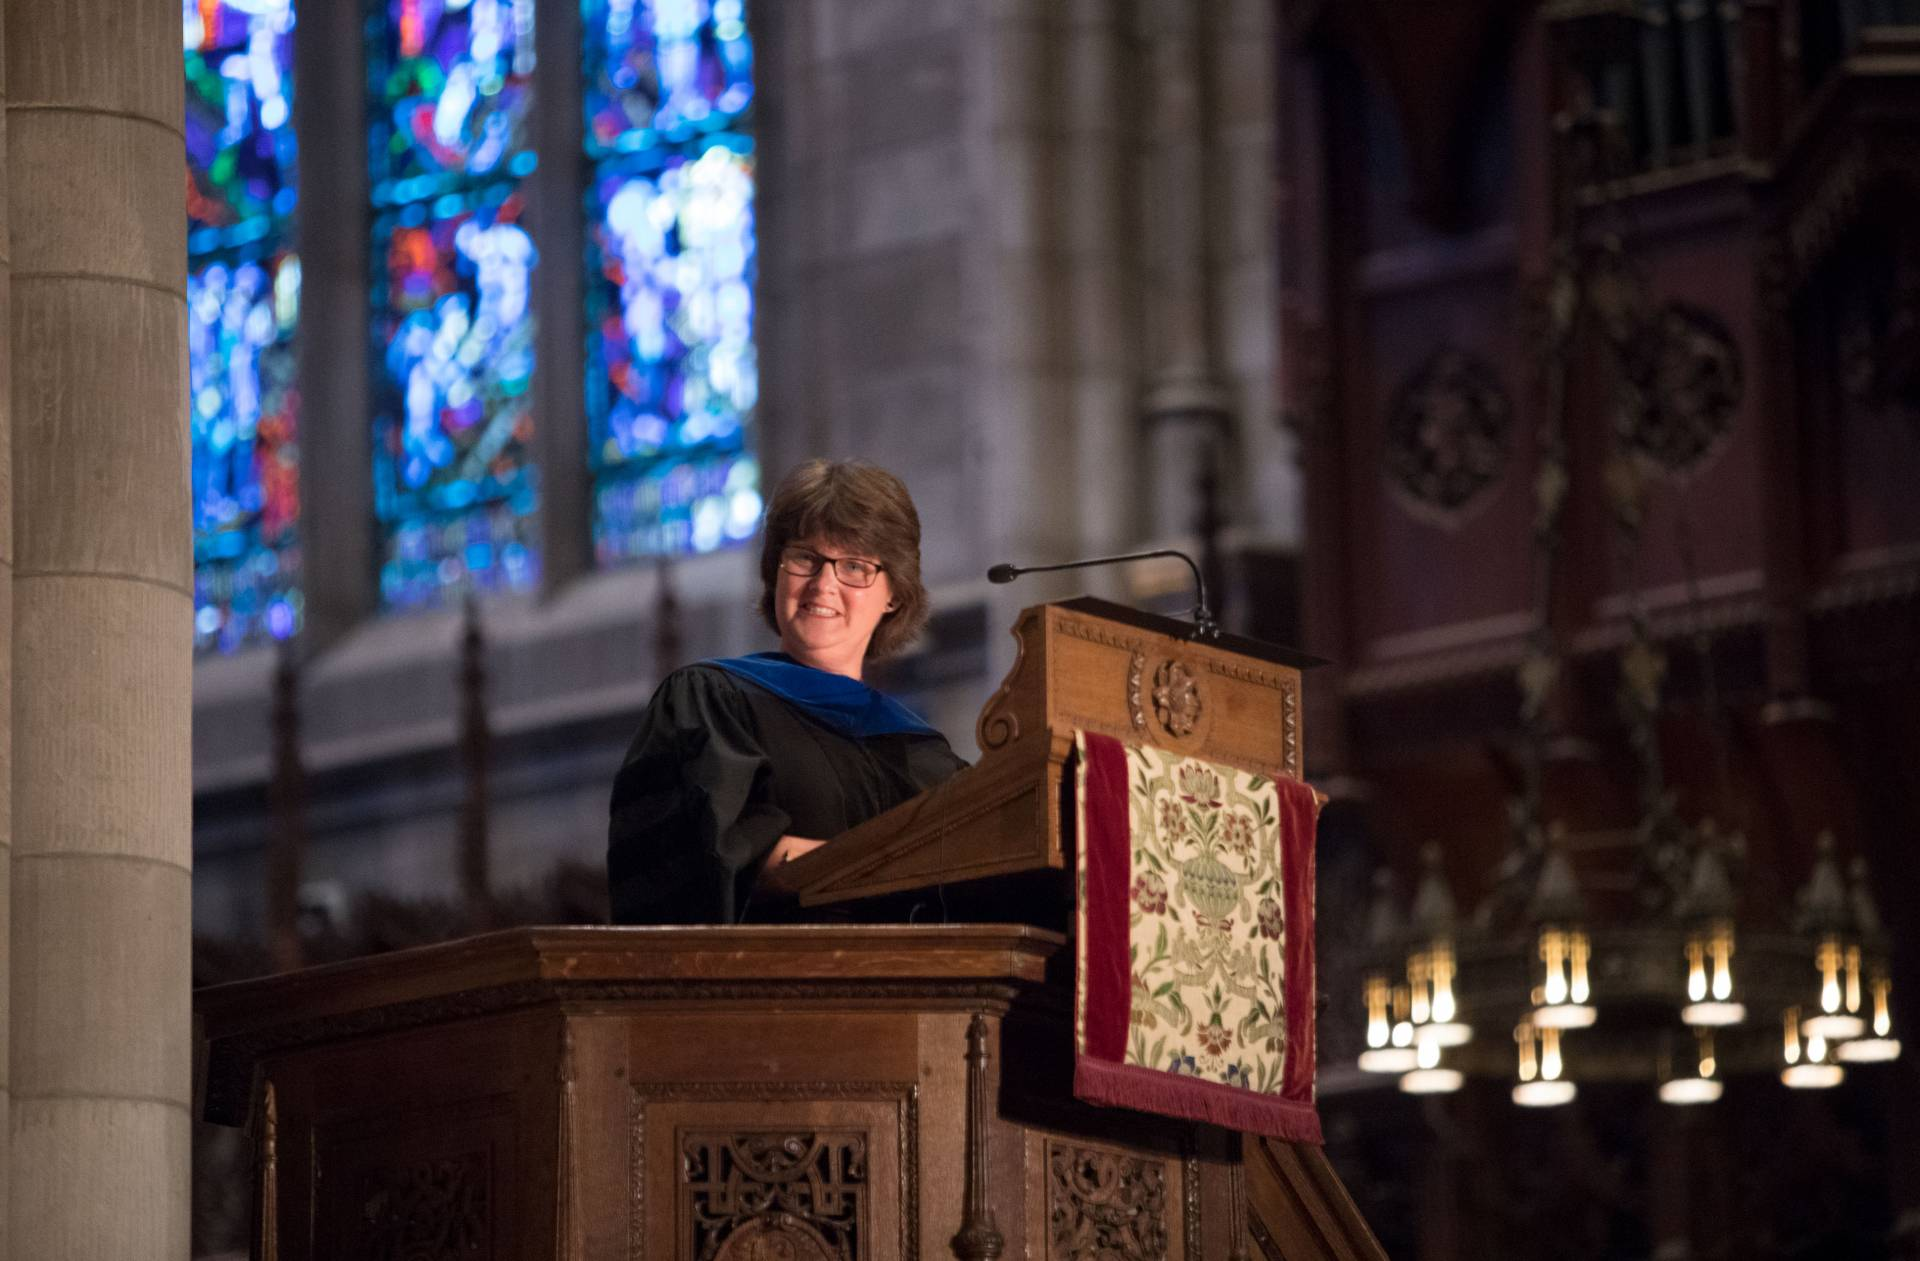 Anne Holton at podium during Baccalaureate 2017 ceremony